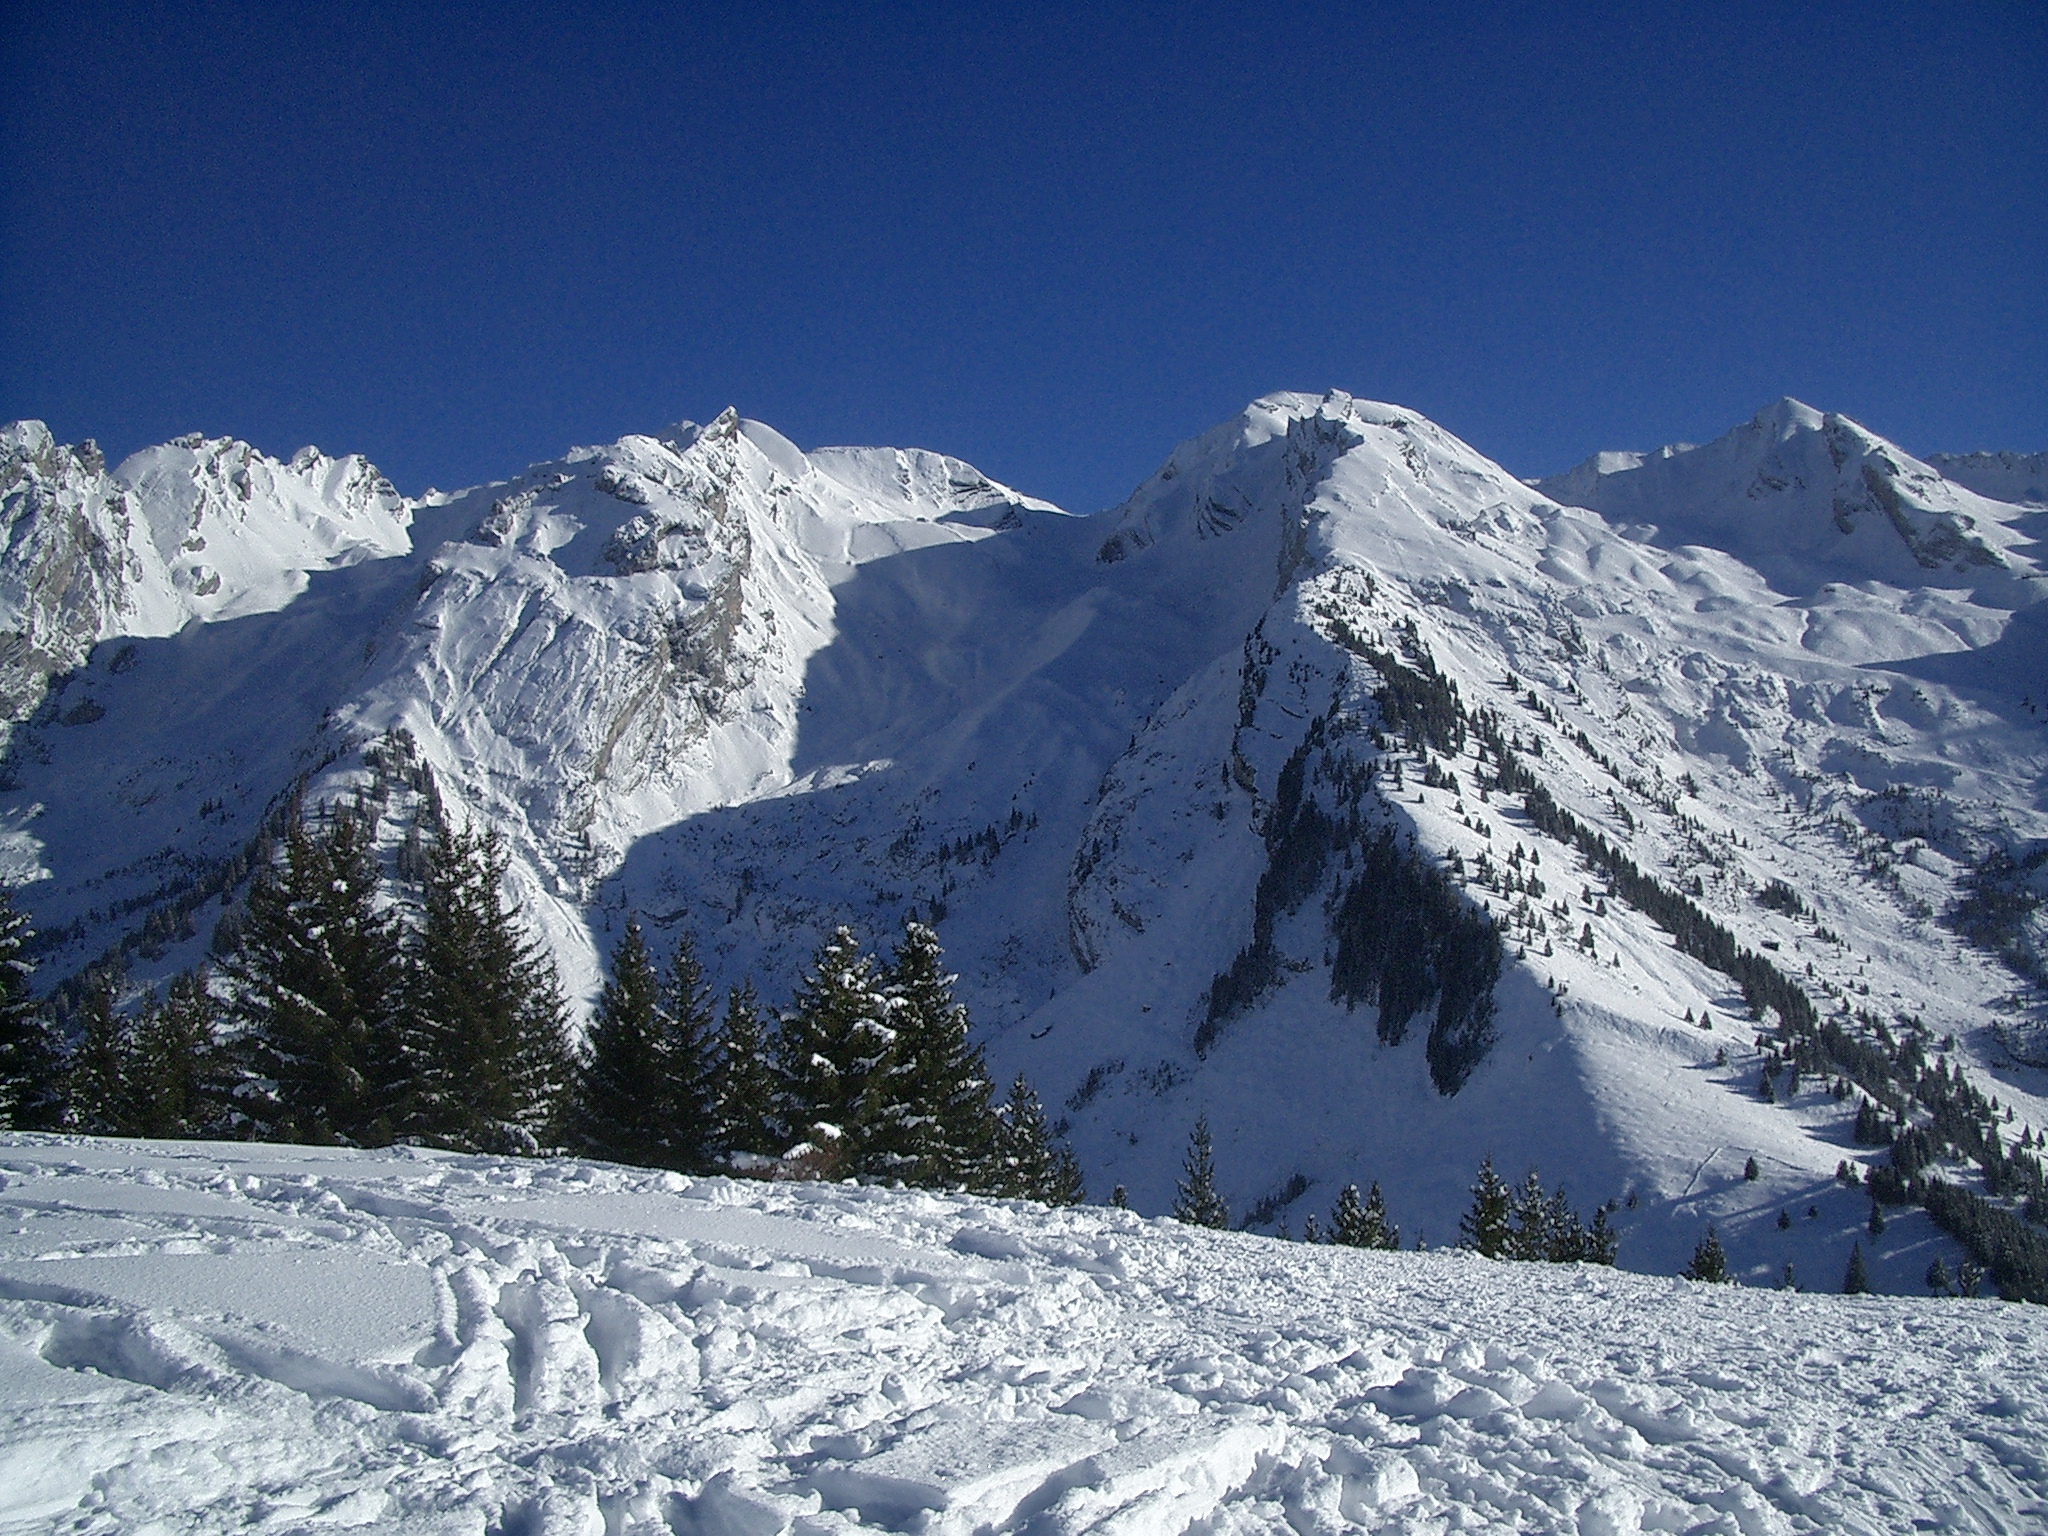 File:Aravis Nord 2 jpg - Wikimedia Commons